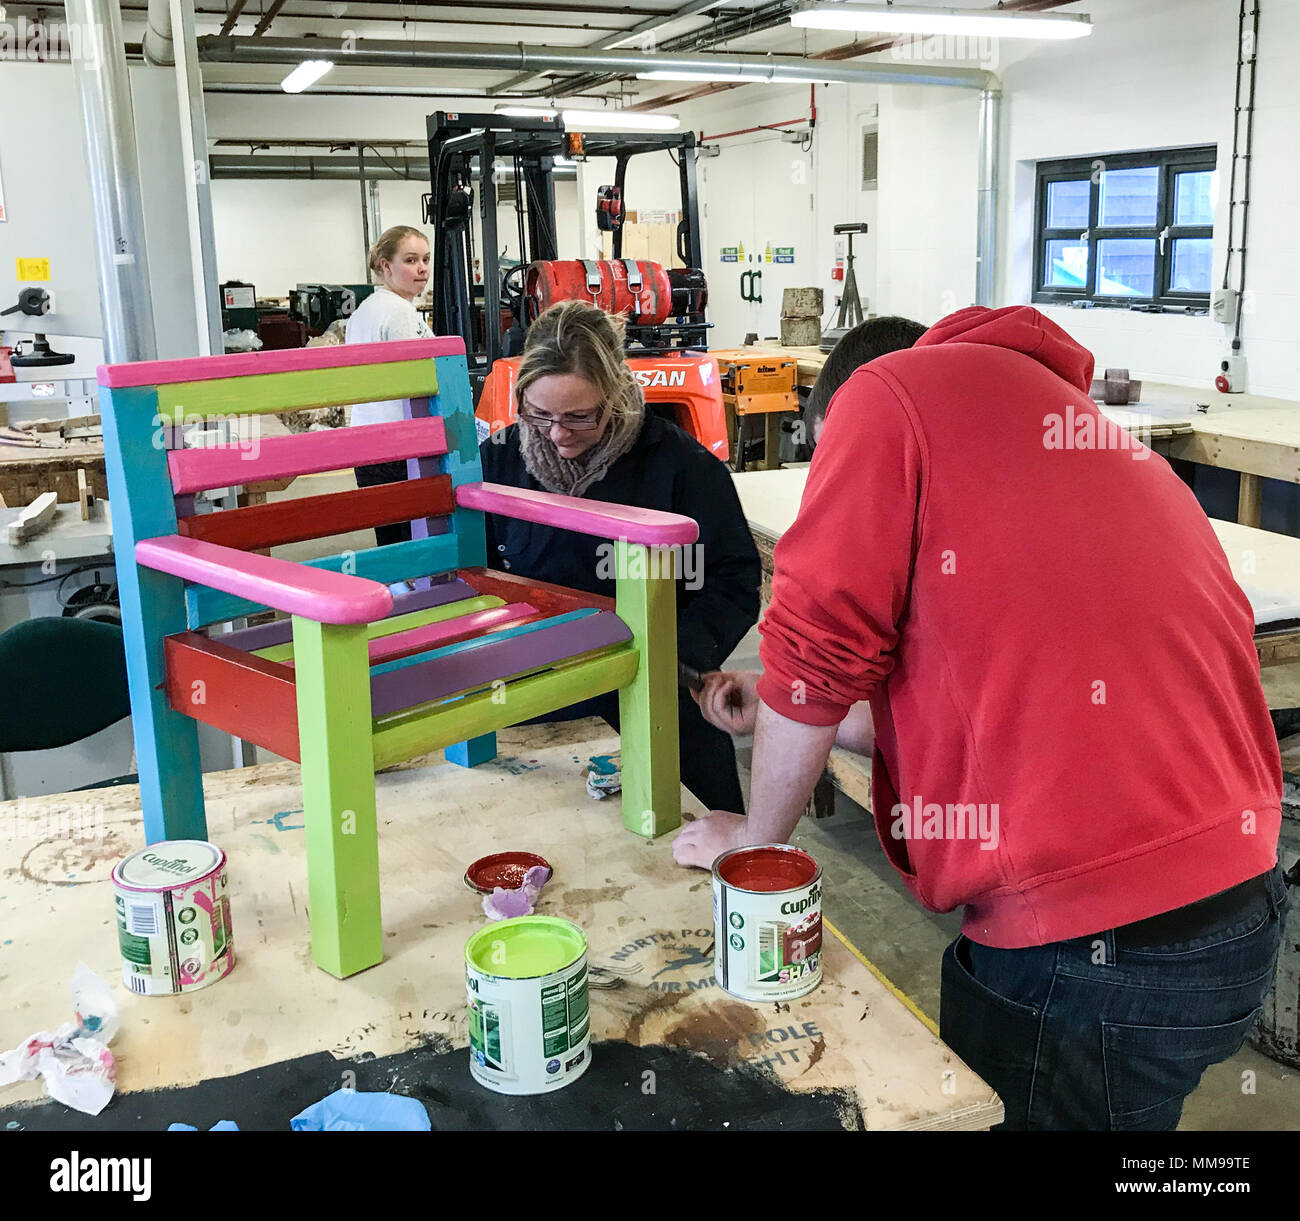 RAW Workshop making furniture, woodworking charity, Blackbird Leys, reclaimed woodworkers - Stock Image